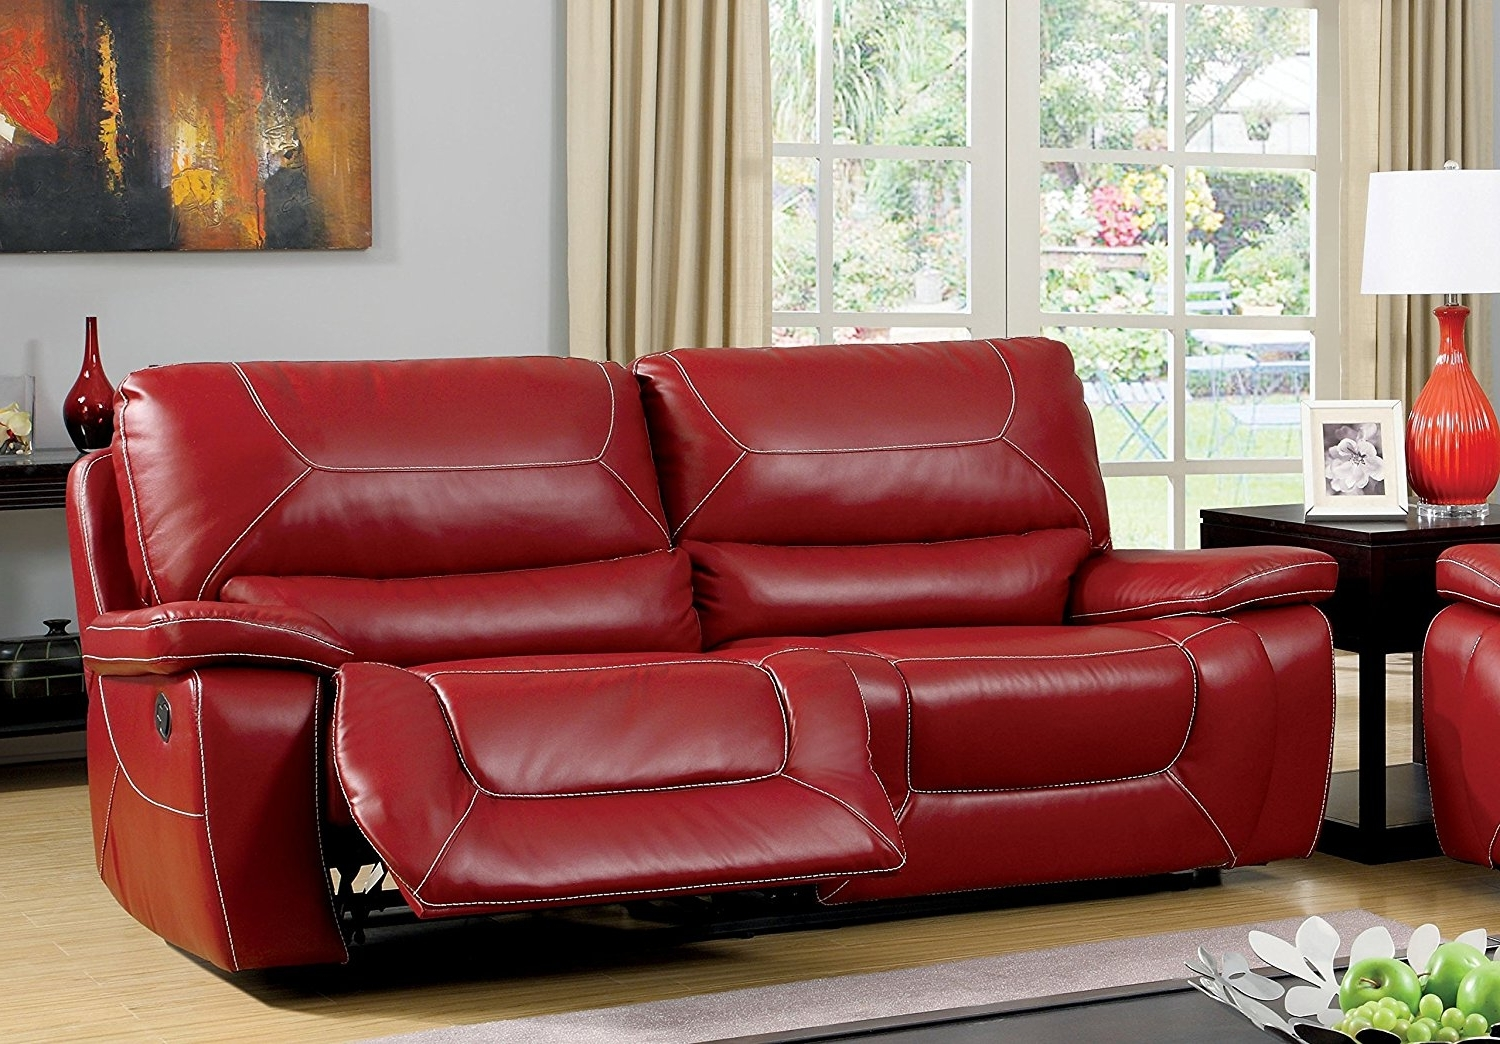 Super Red Leather Reclining Sofa And Loveseat 73 For Sofa Room With Trendy Red Leather Reclining Sofas And Loveseats (View 8 of 15)